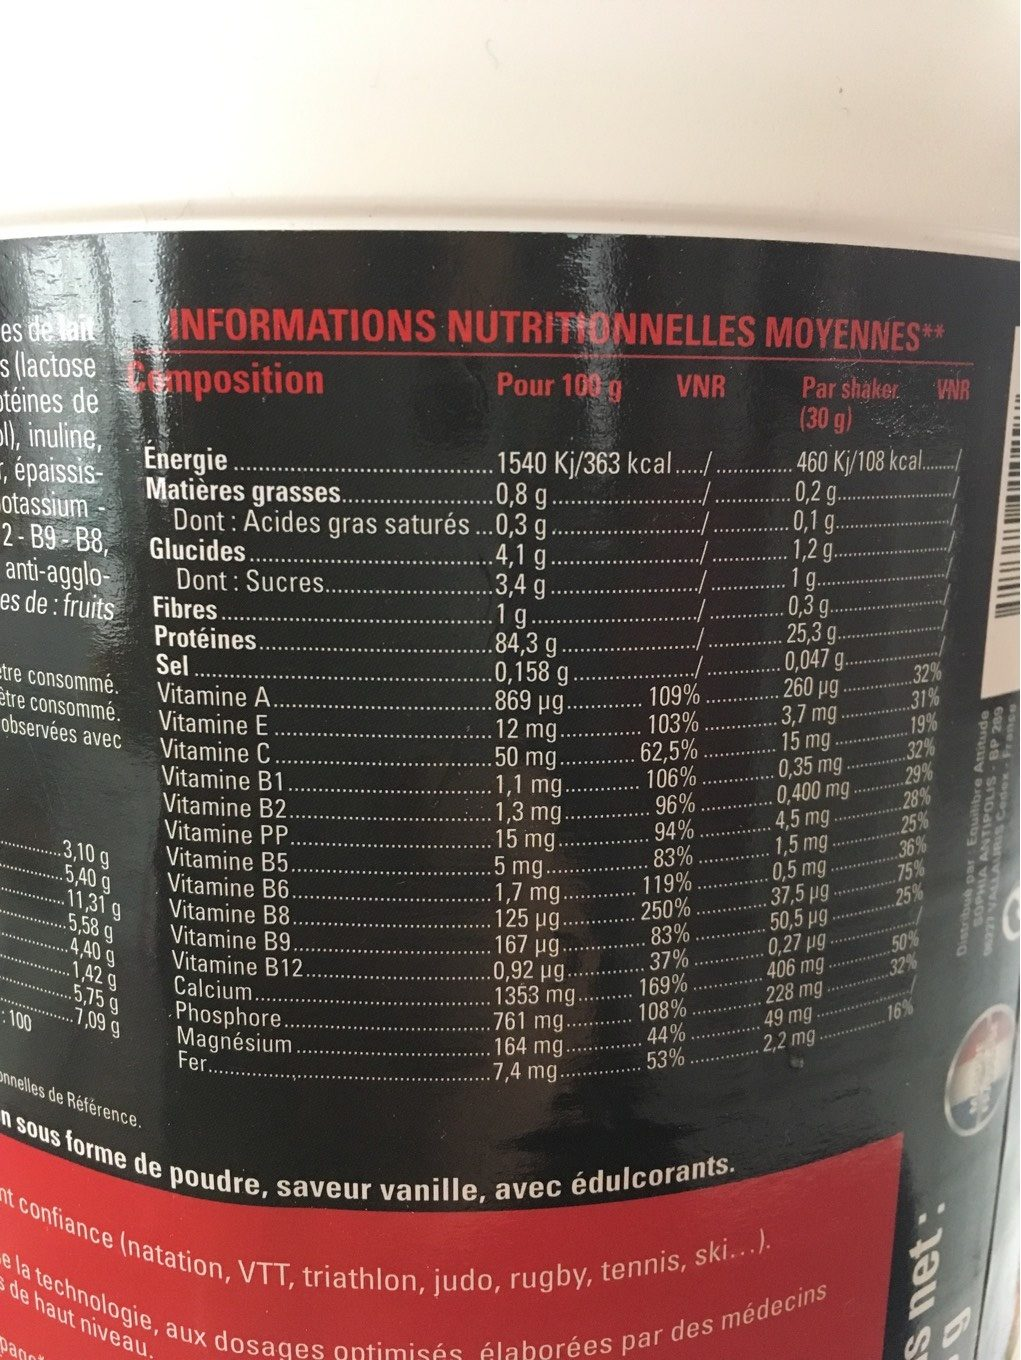 Eafit Milk & Egg 95 Muscle Volume And Definition Vanilla 750G (muscular Construction) - Voedingswaarden